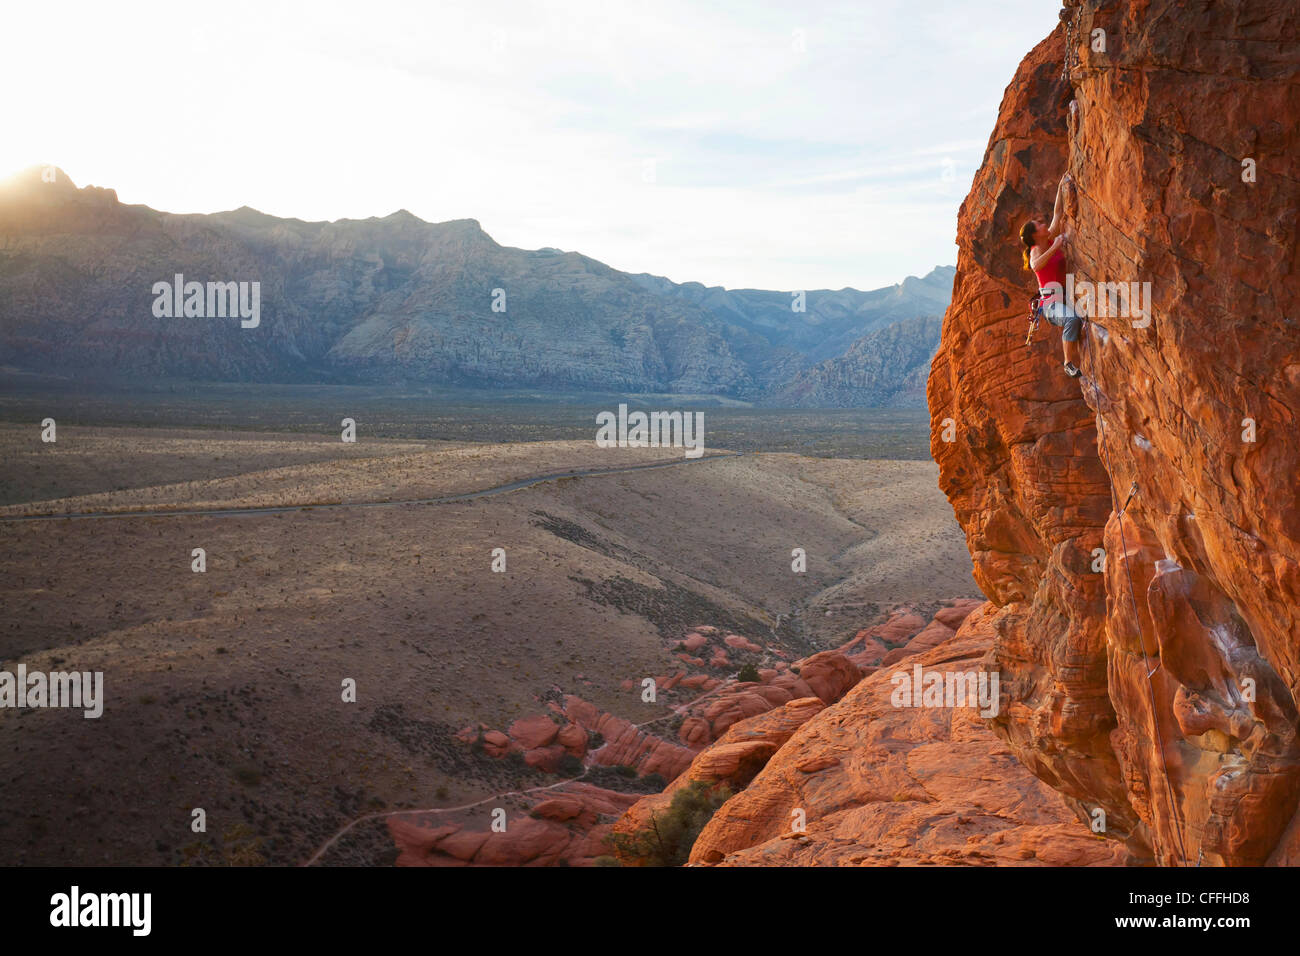 A rock climber in the Calico Hills, Red Rock Canyon National Conservation Area, Nevada, USA. - Stock Image